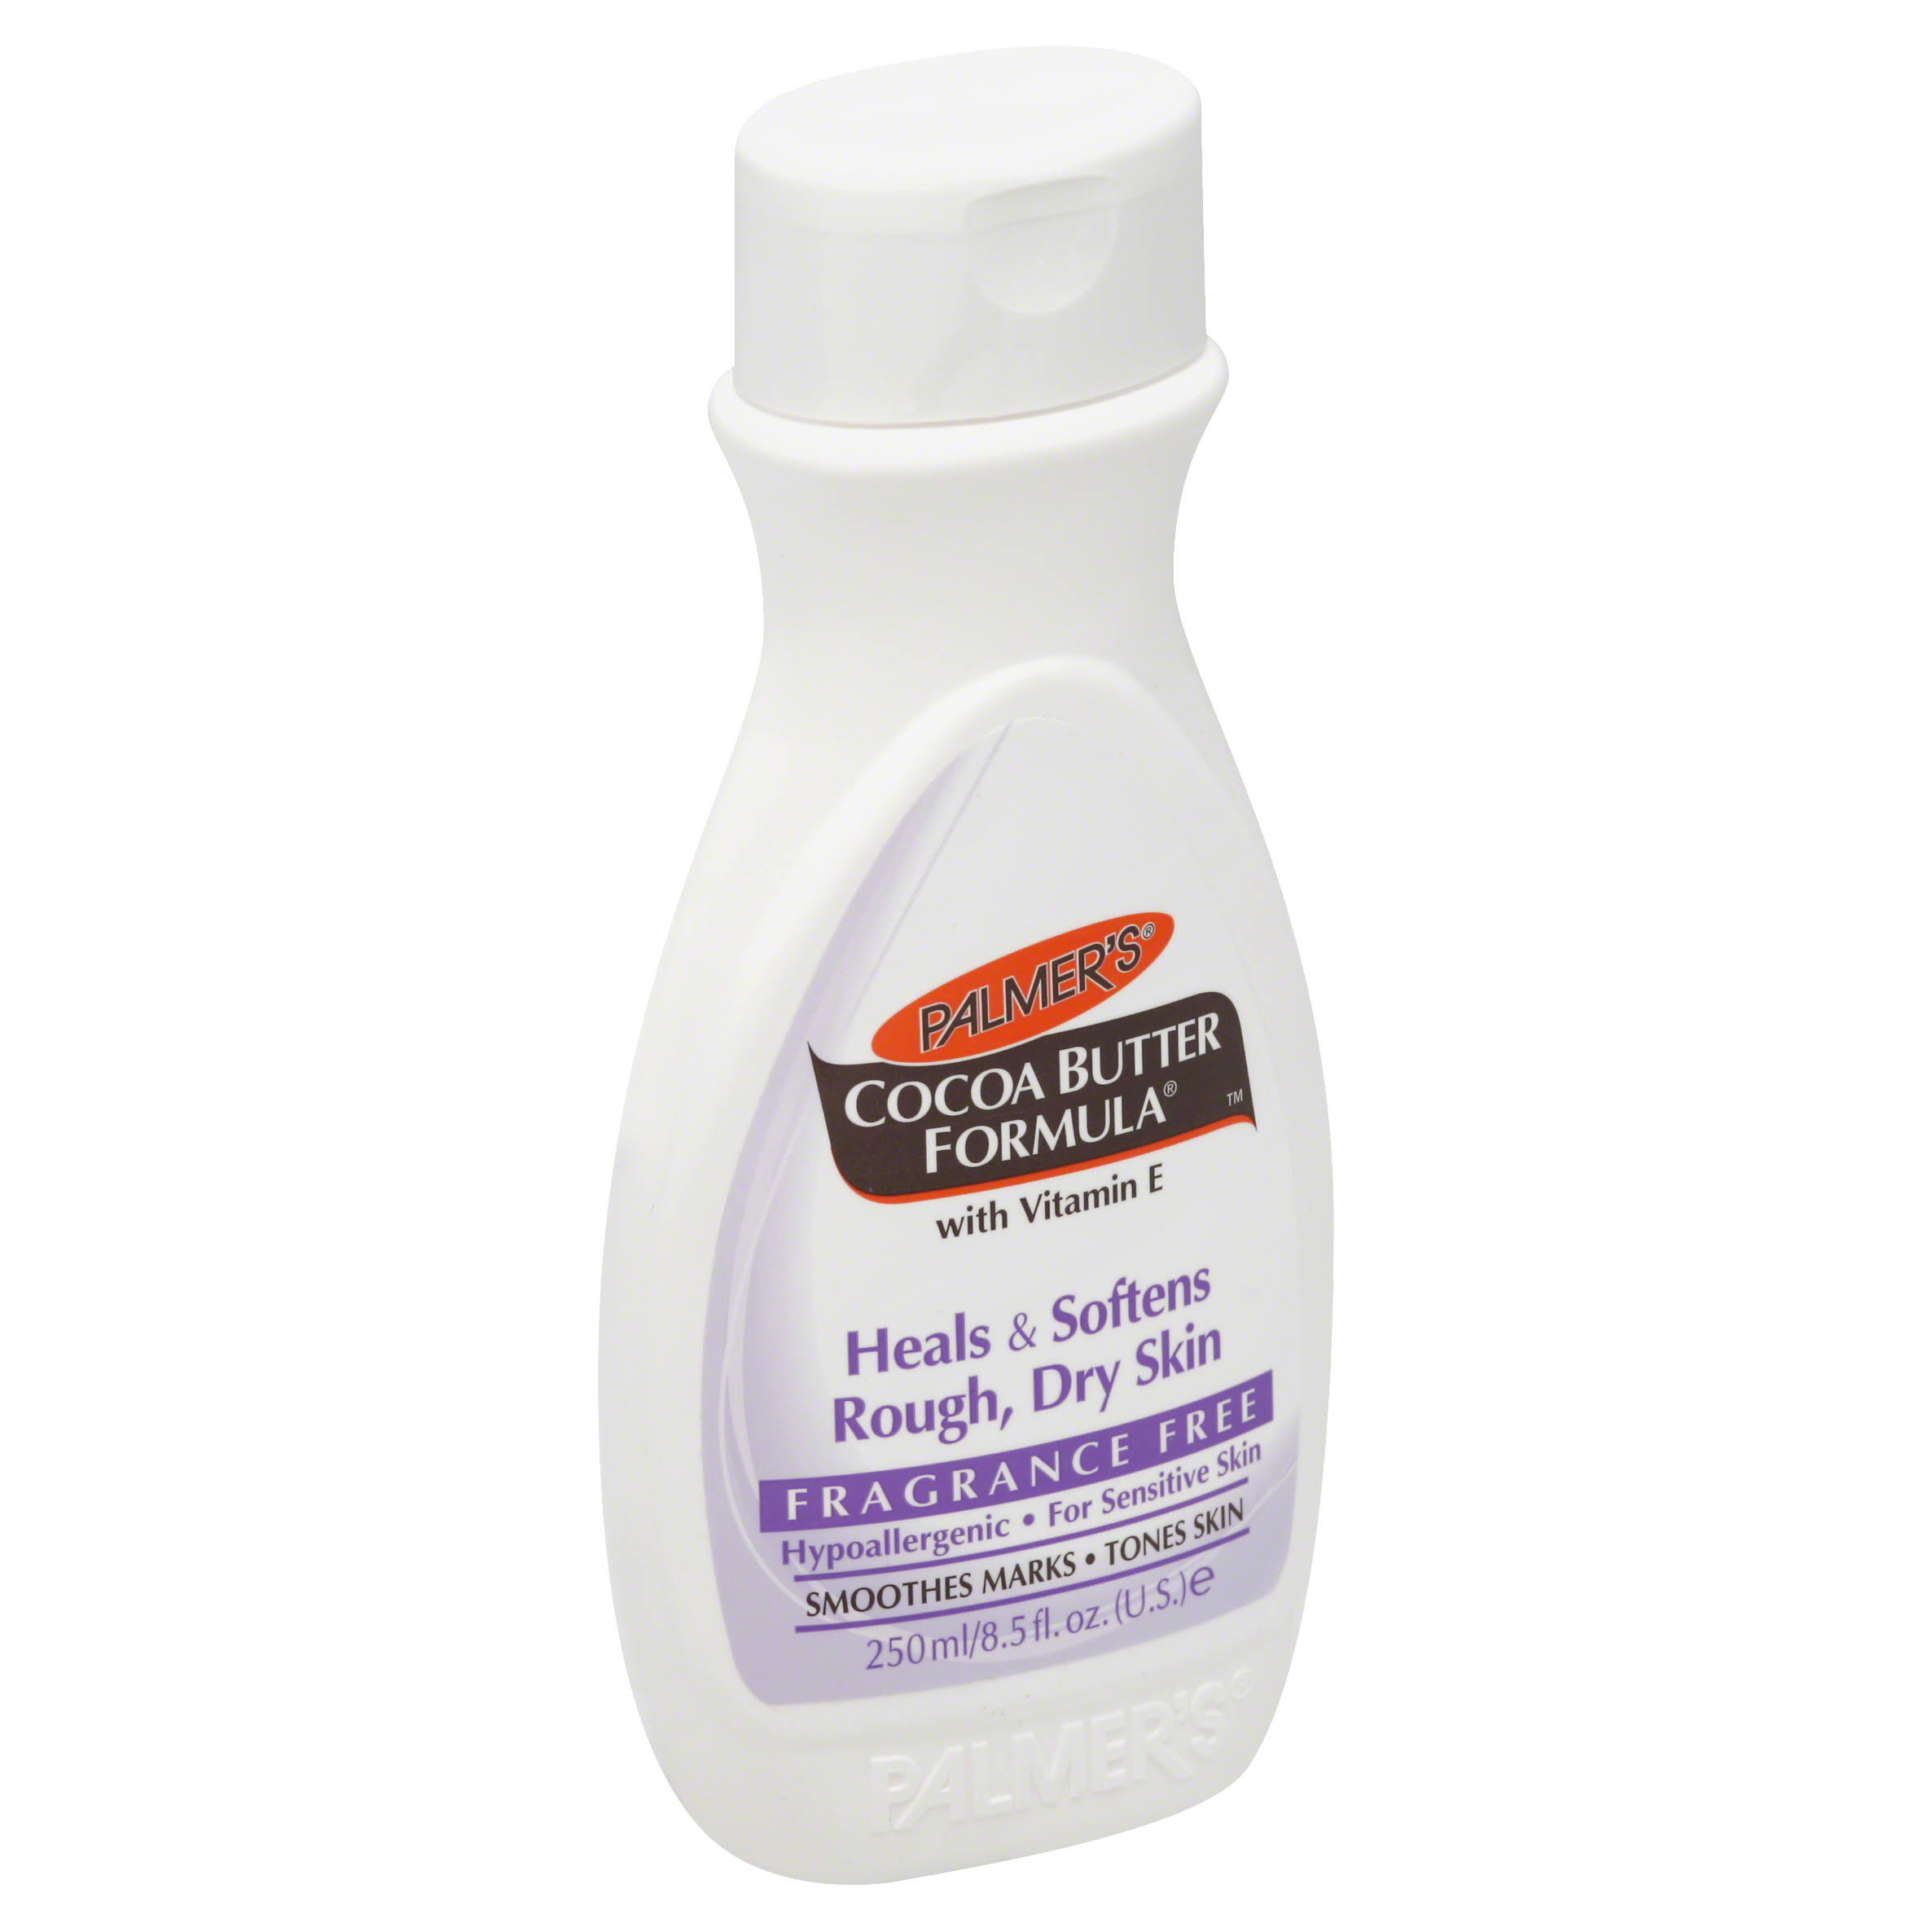 Palmers Fragrance Free Cocoa Butter Formula - 250ml